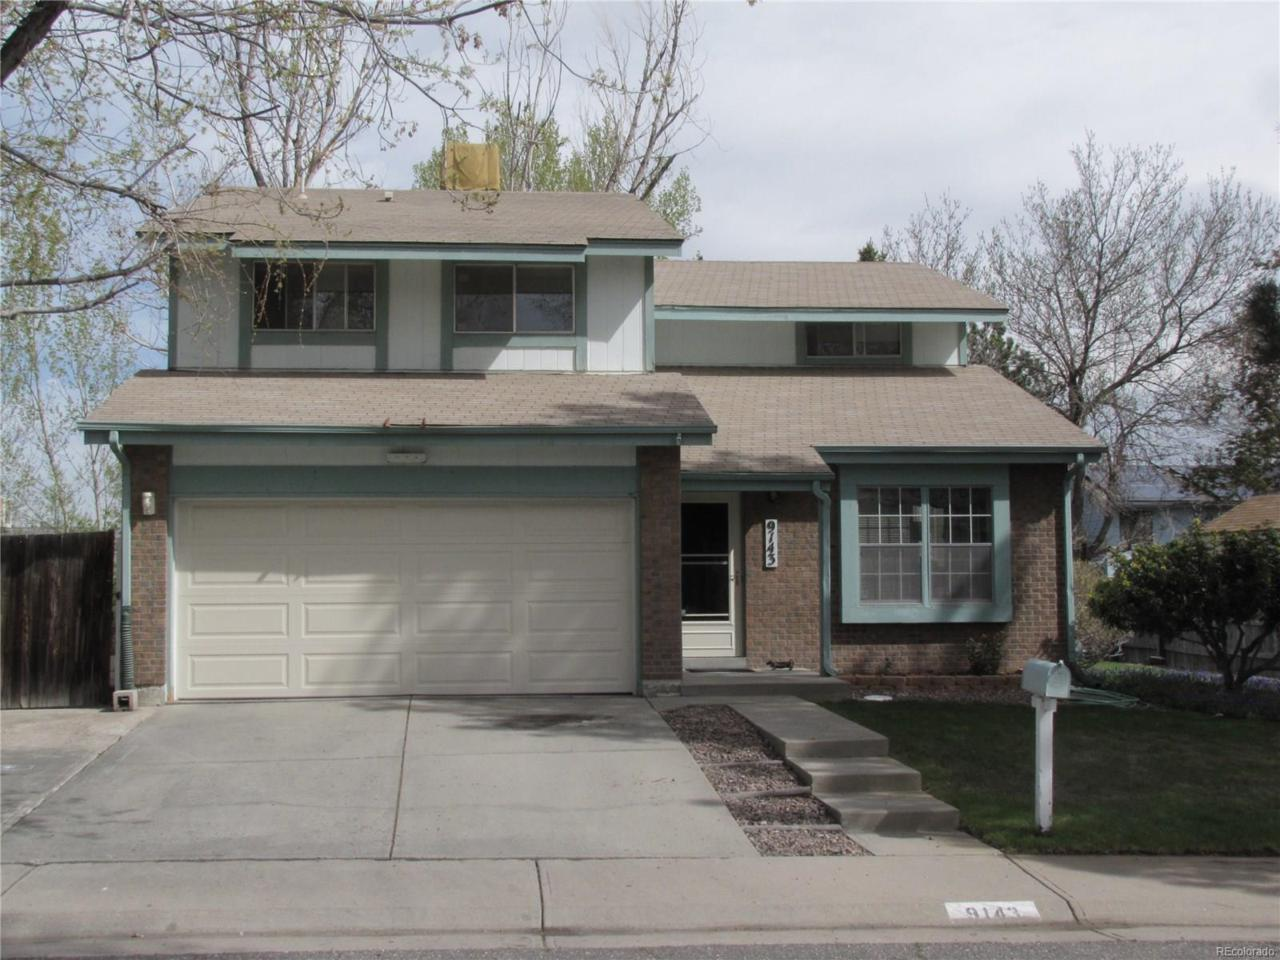 9143 W 75th Circle, Arvada, CO 80005 (MLS #3254869) :: 8z Real Estate